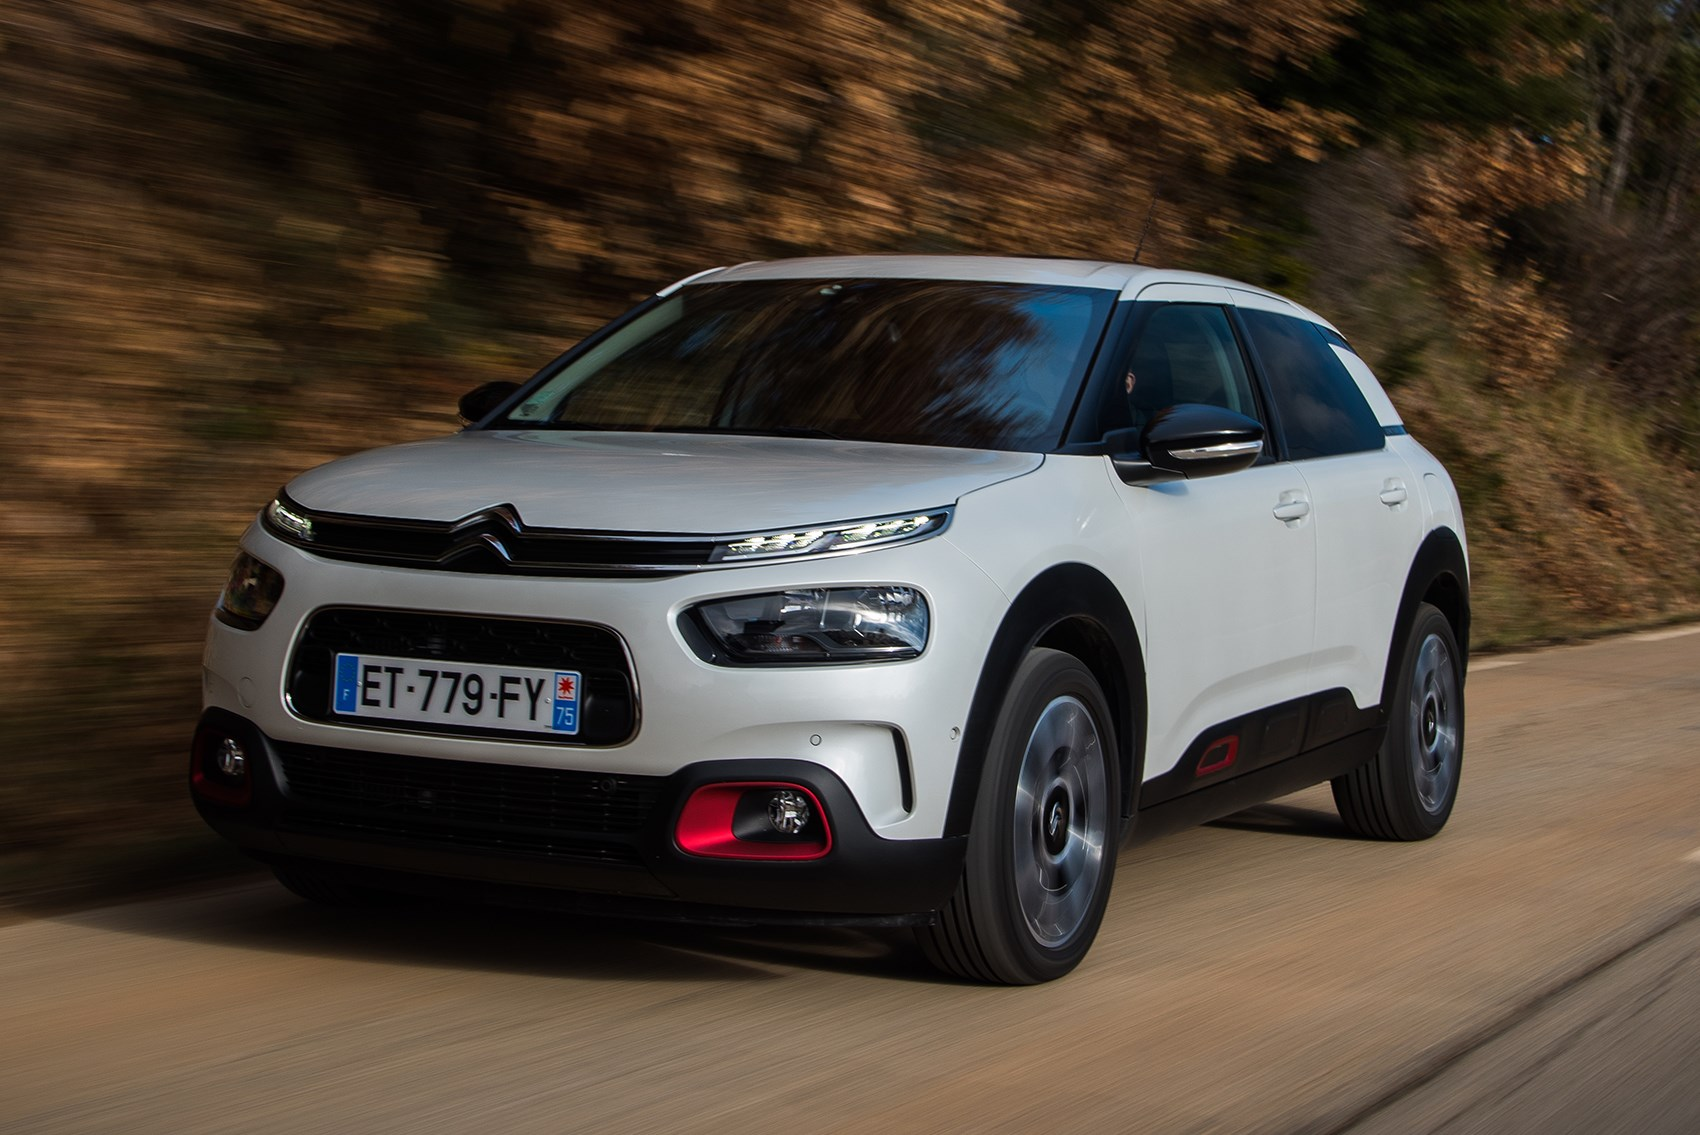 new citroen c4 cactus review comfort is king by car magazine. Black Bedroom Furniture Sets. Home Design Ideas